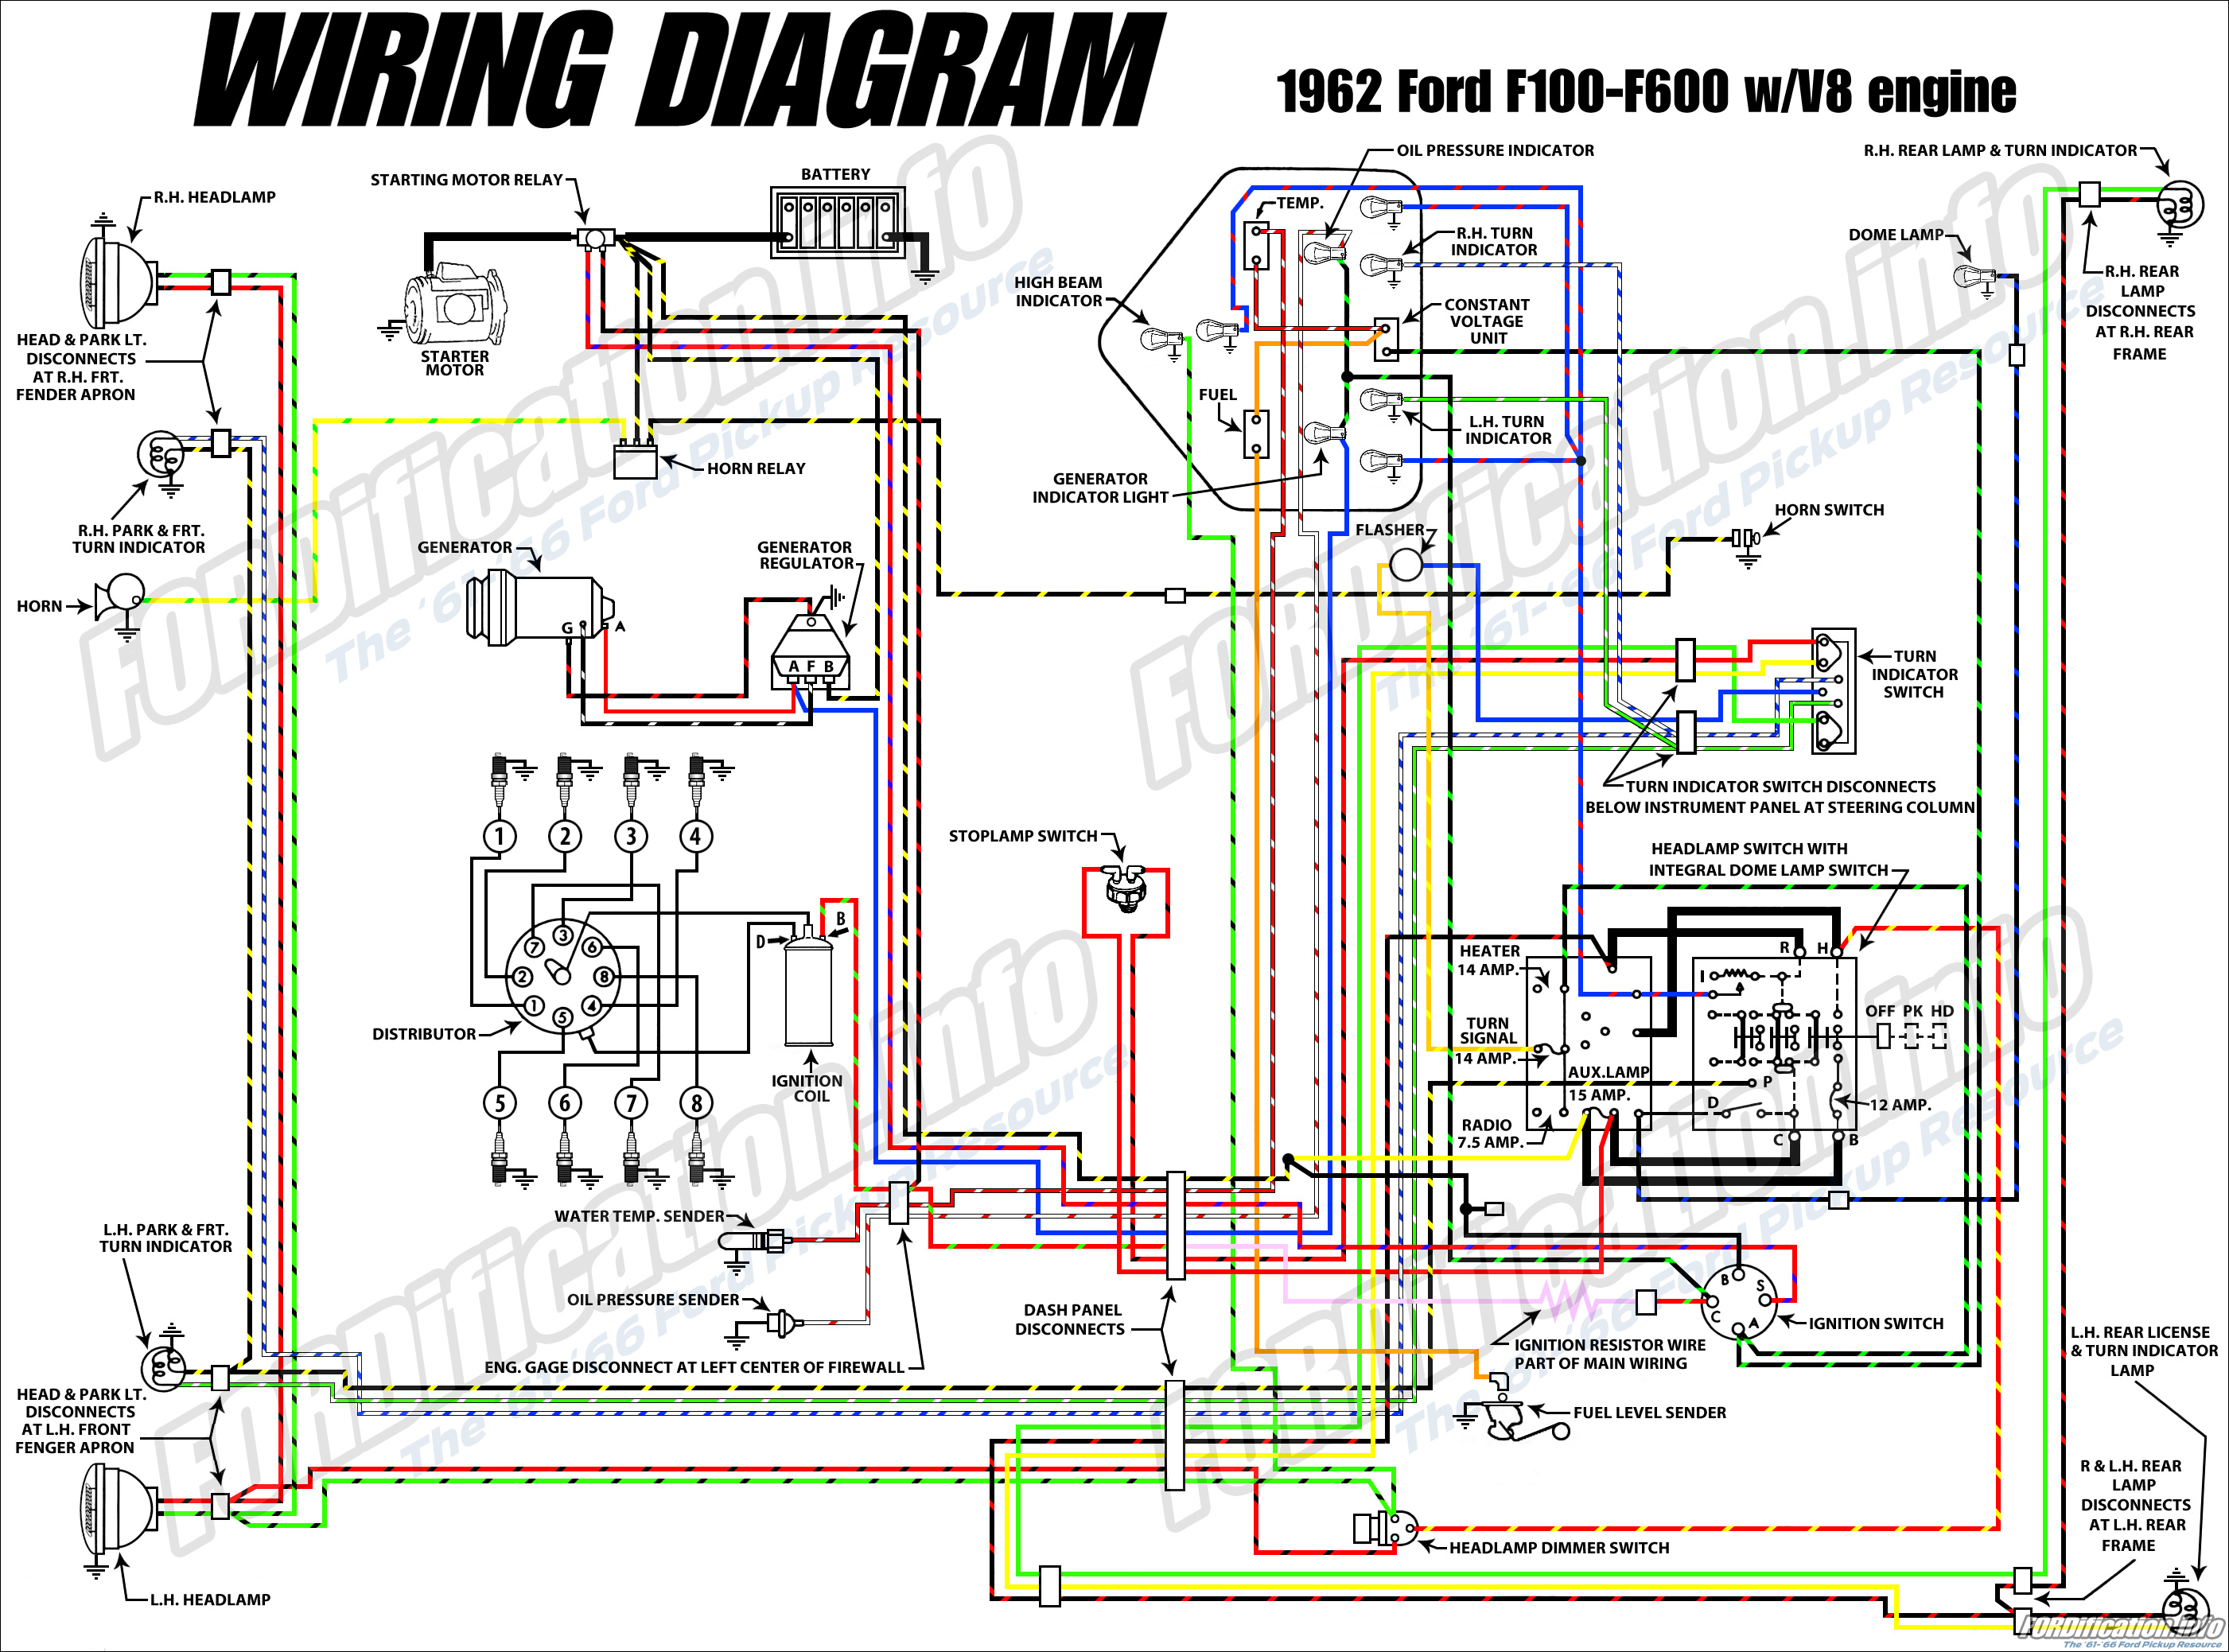 1962 ford truck wiring diagrams fordification info the 61 66 1962 wiring diagram f100 f600 v8 engines original grayscale version